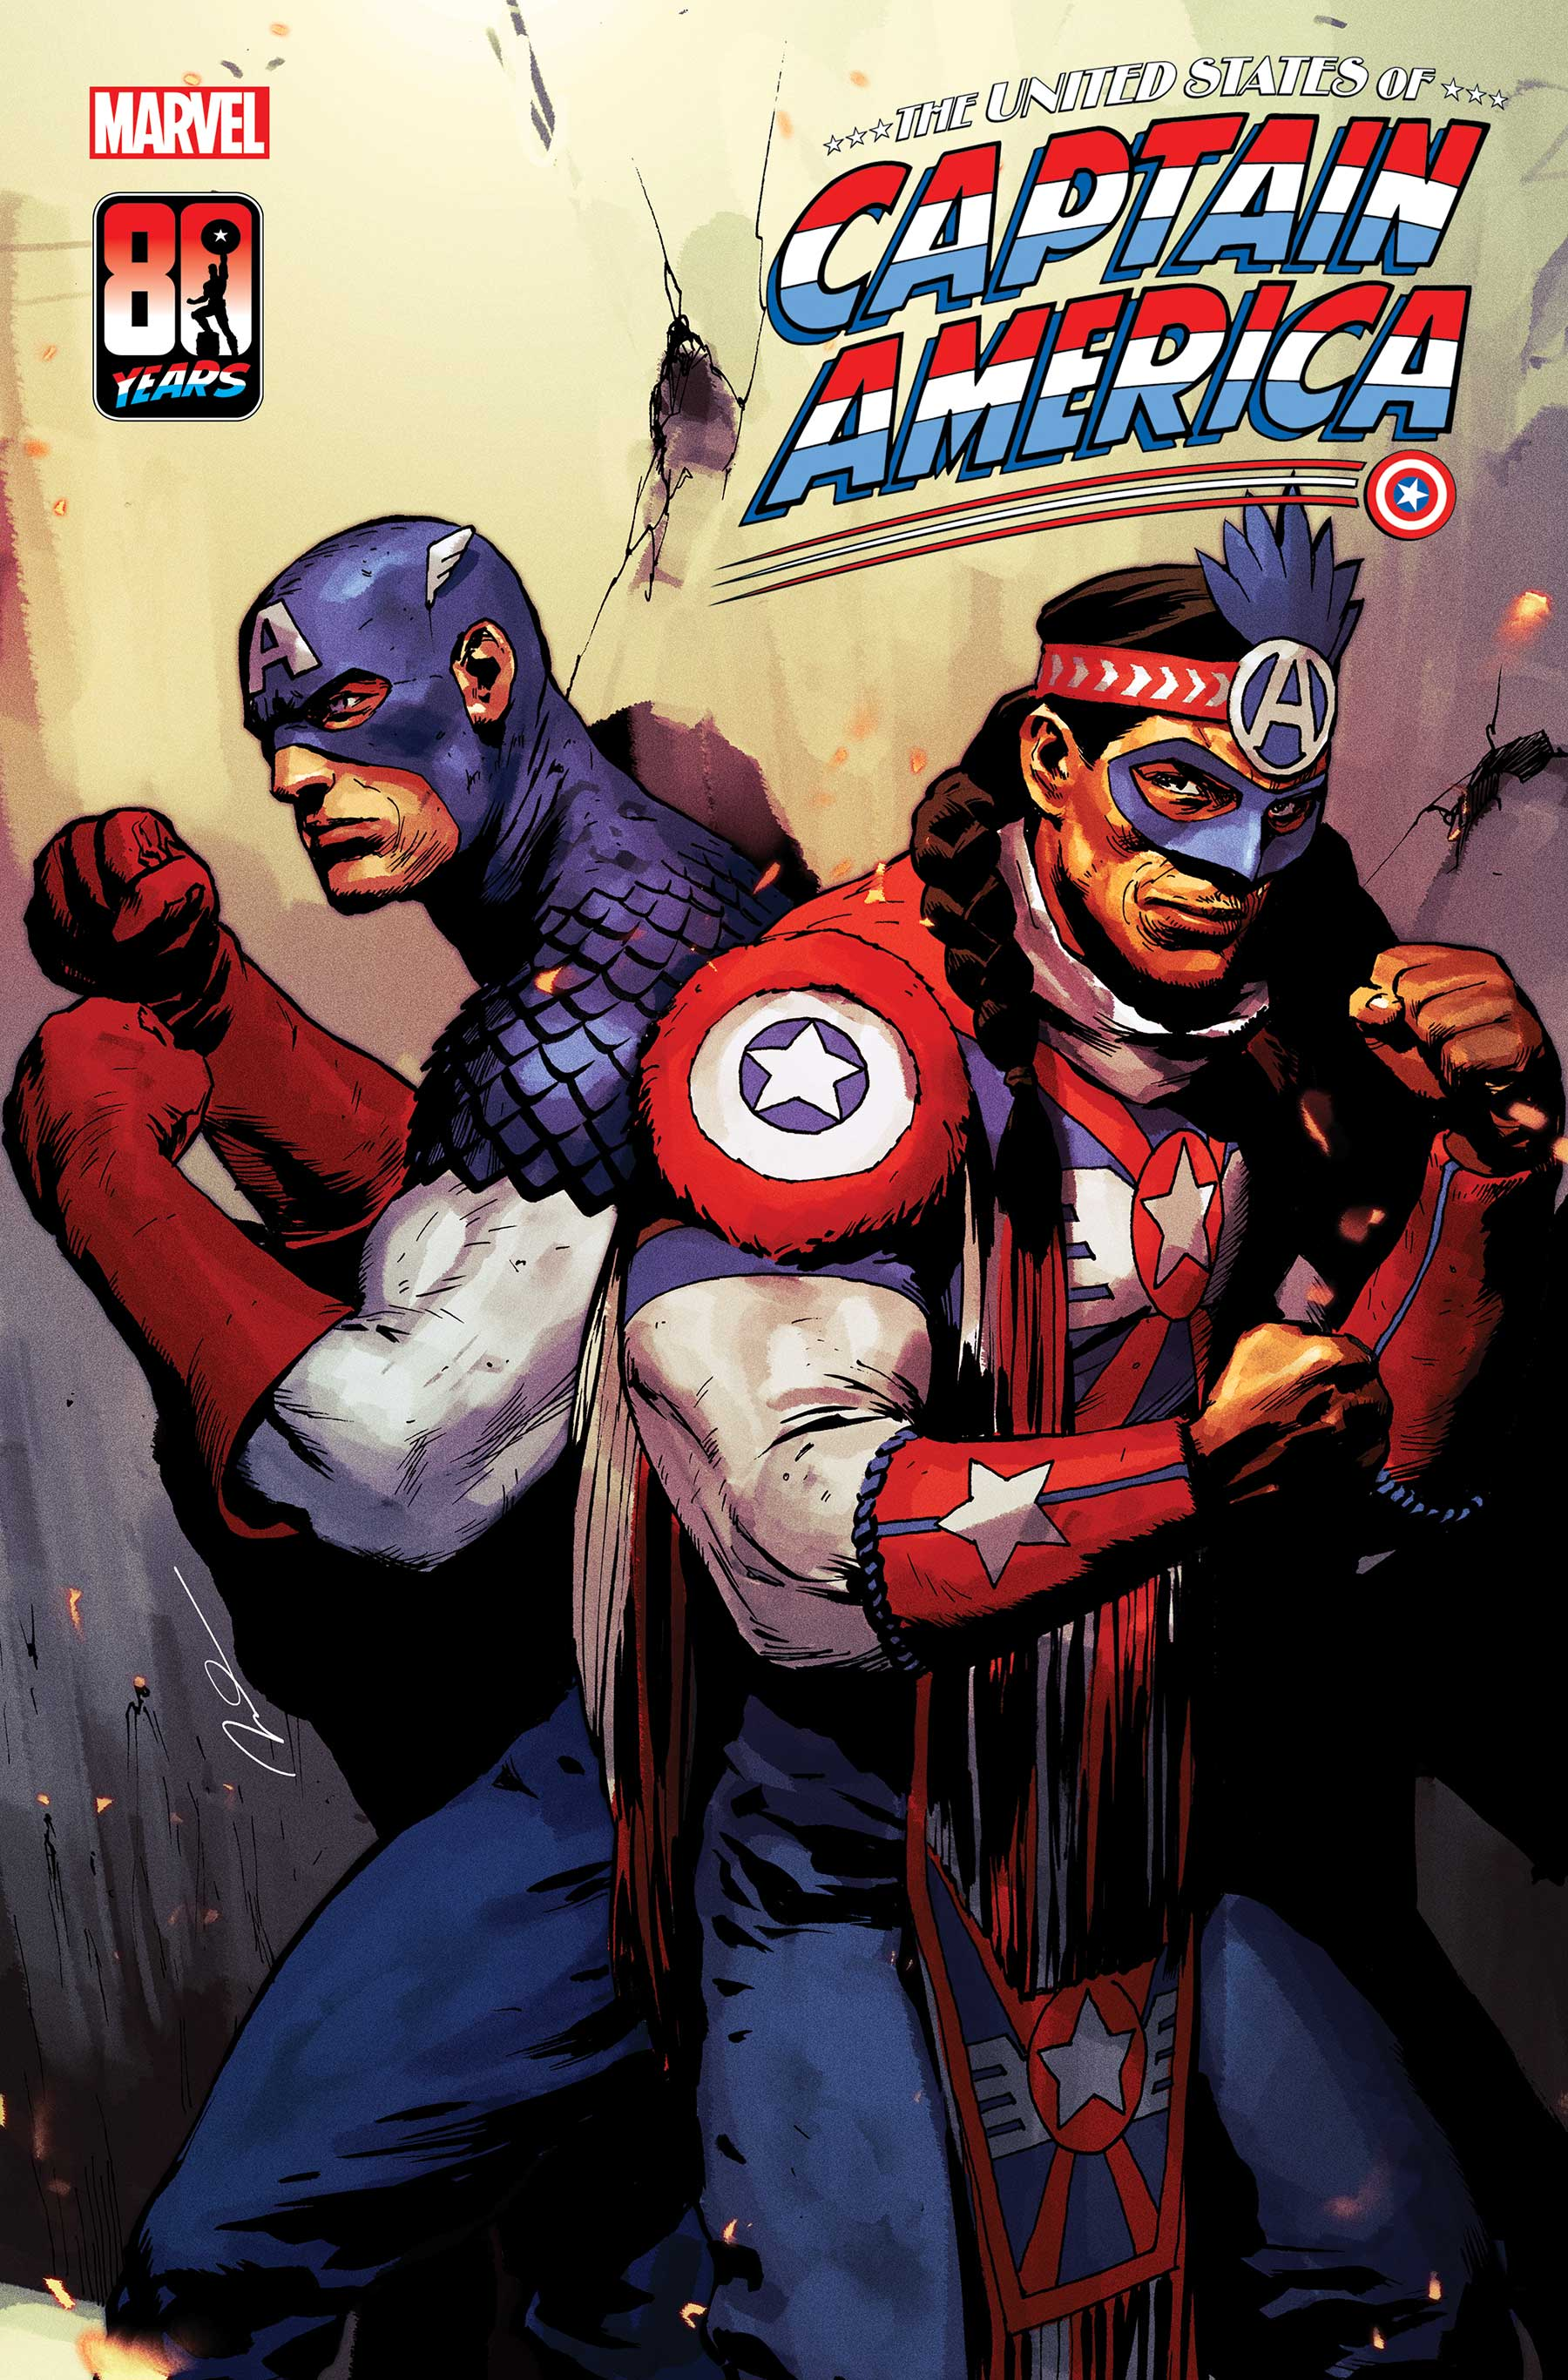 The United States of Captain America (2021) #3